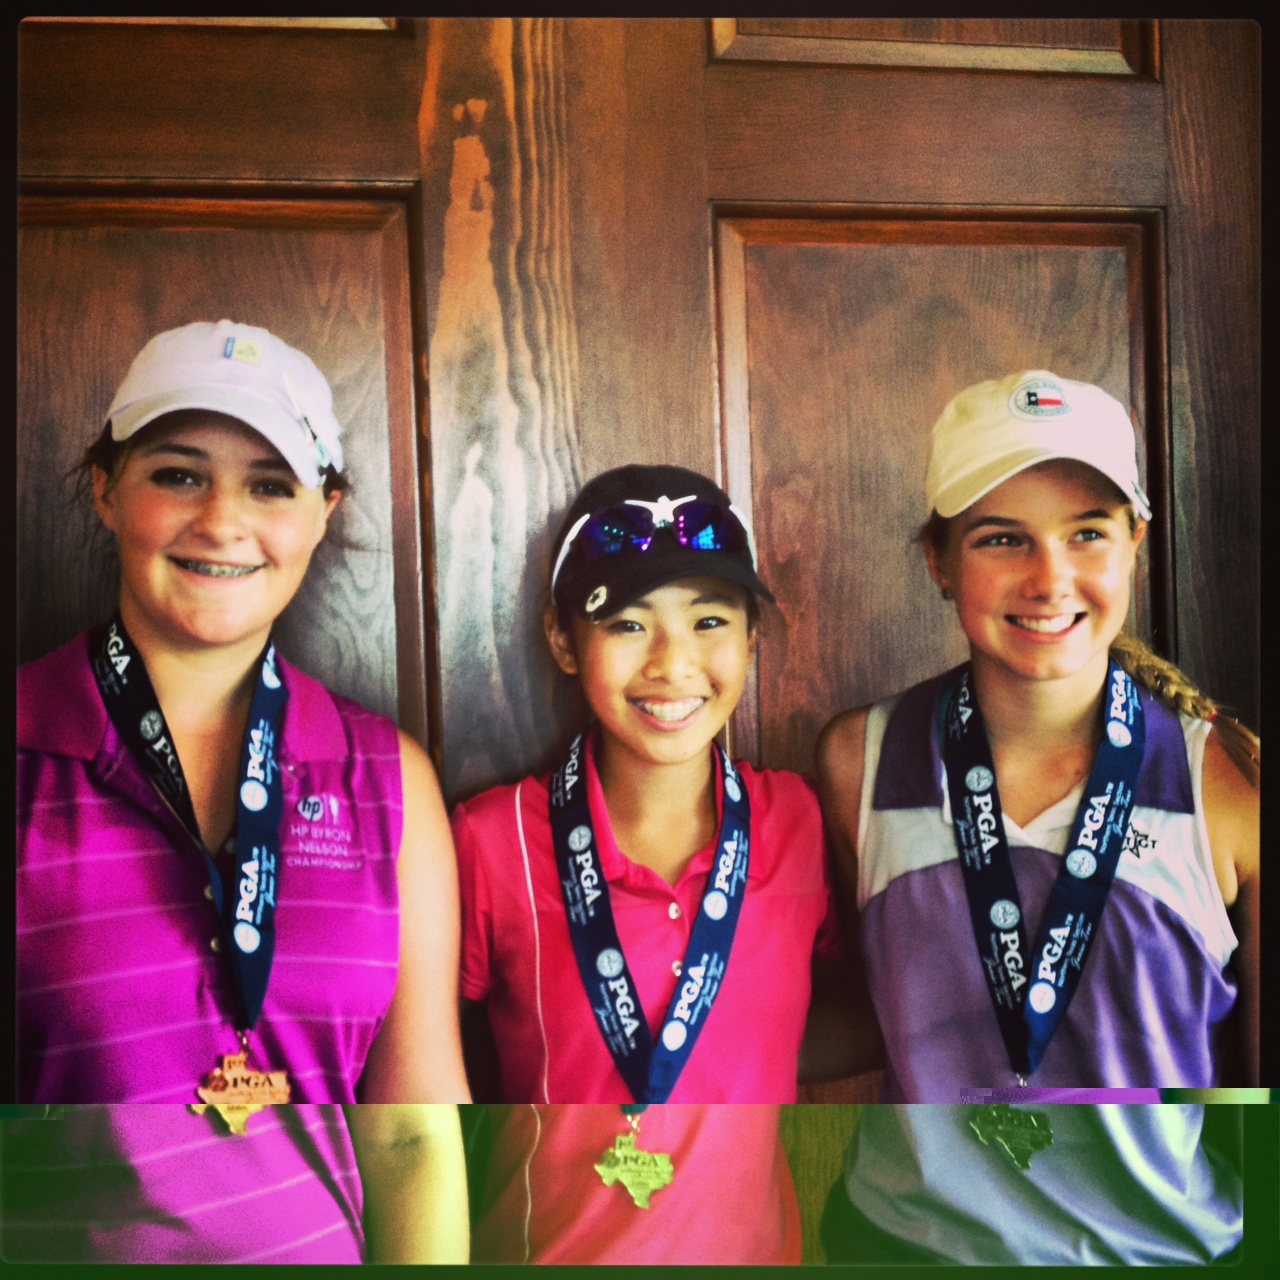 Emily Zhou_1st_NTPGA_Cowboys Golf Club_ July_2013.jpg